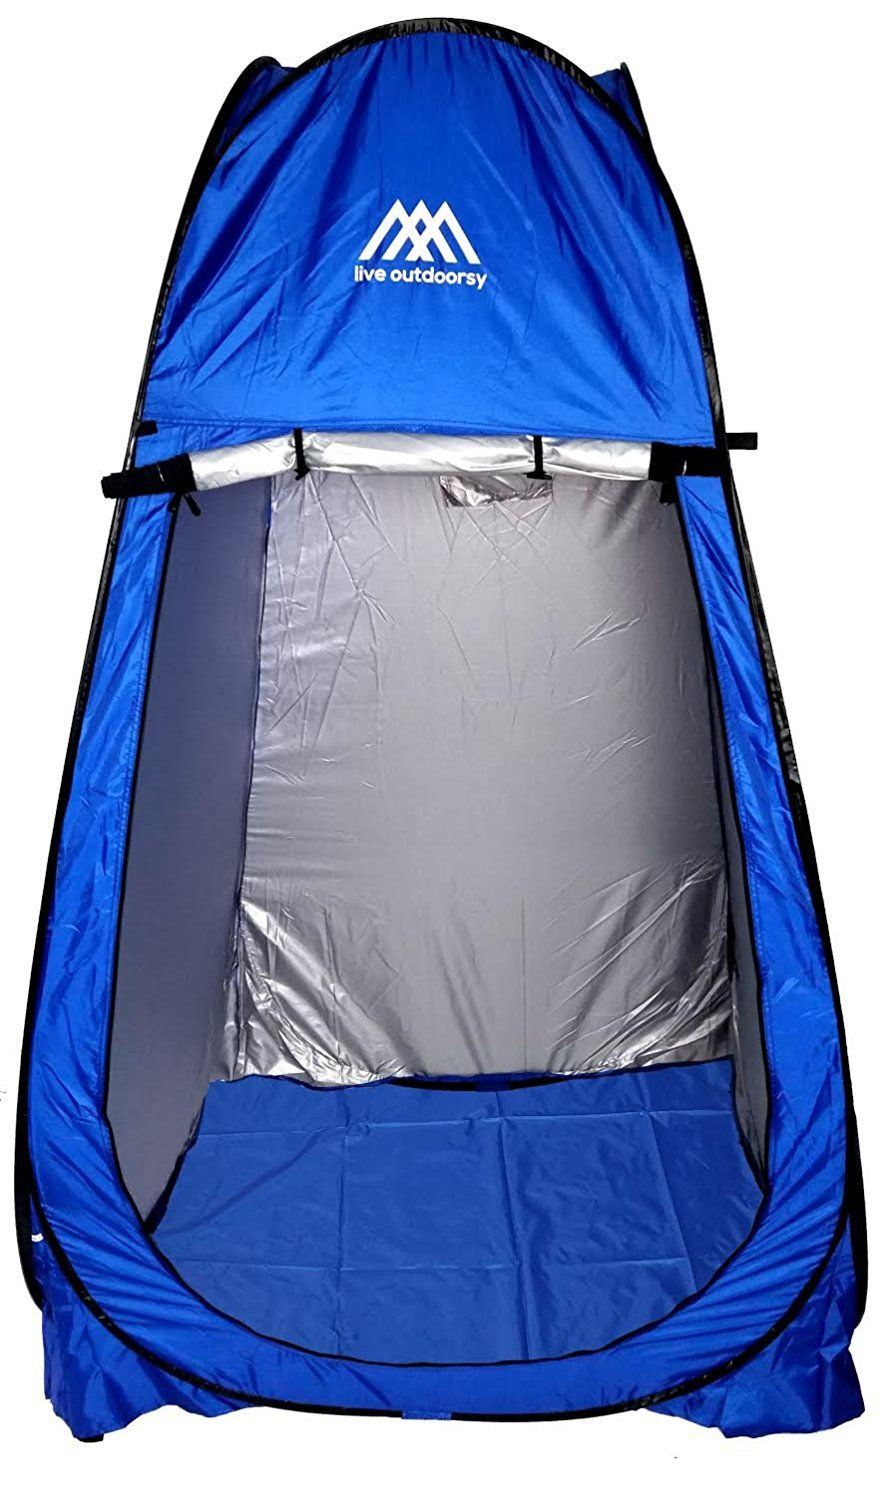 Live Outdoorsy Portable Pop Up Changing Room Tent Tent